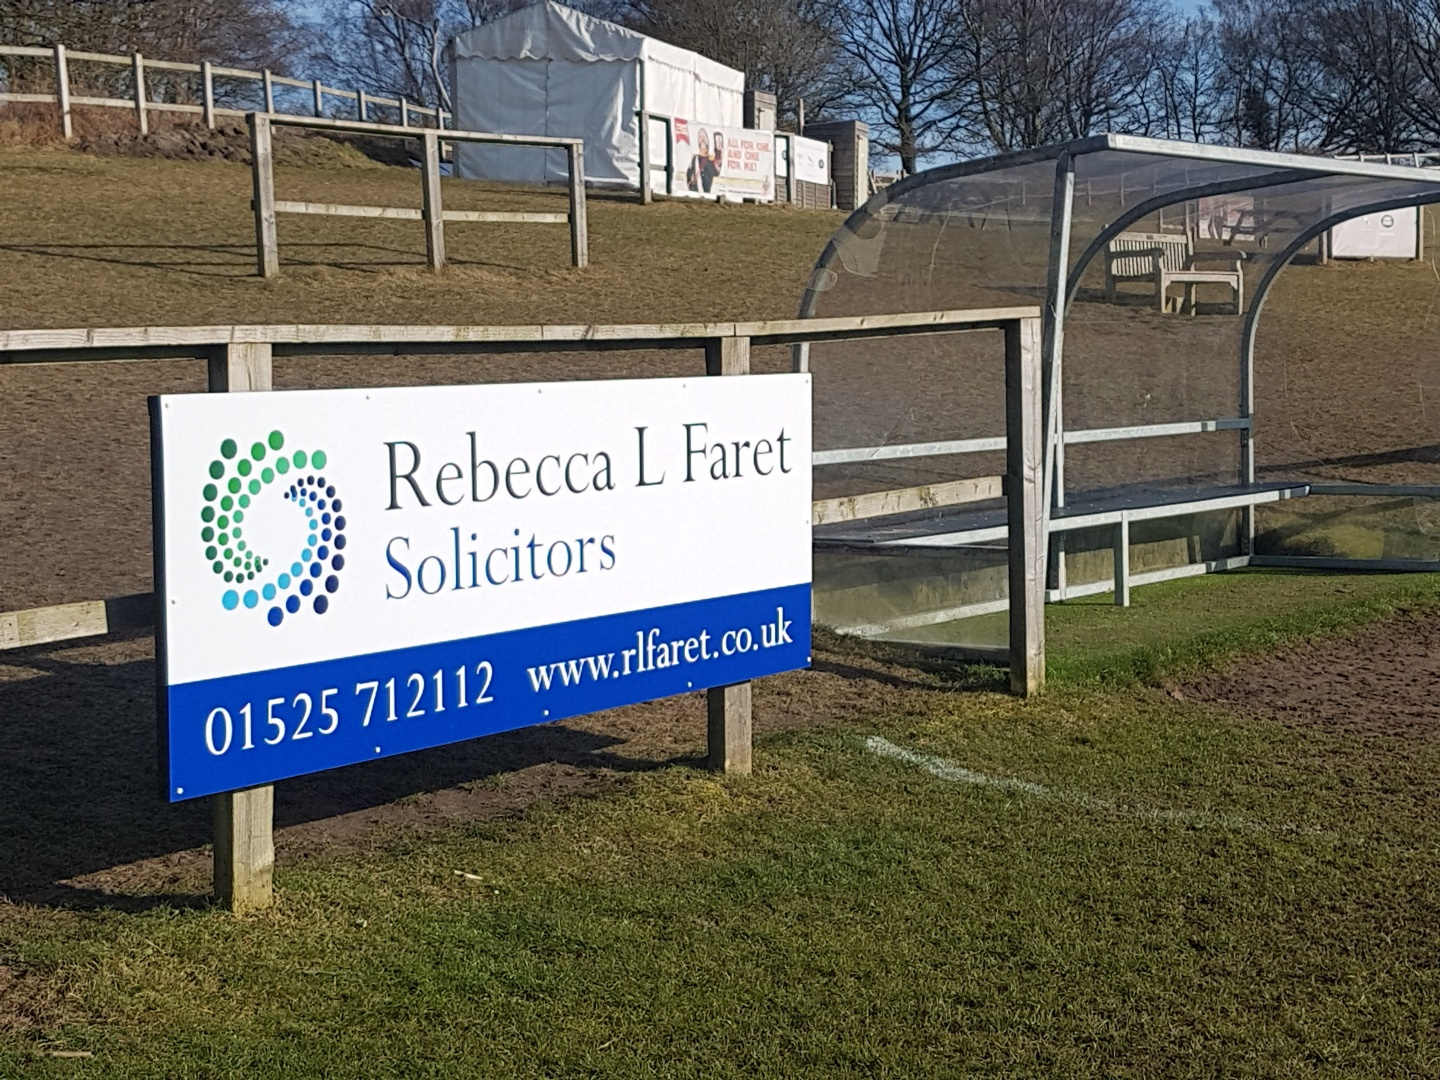 rebecca l faret solicitors - ampthill rugby club sponsorship